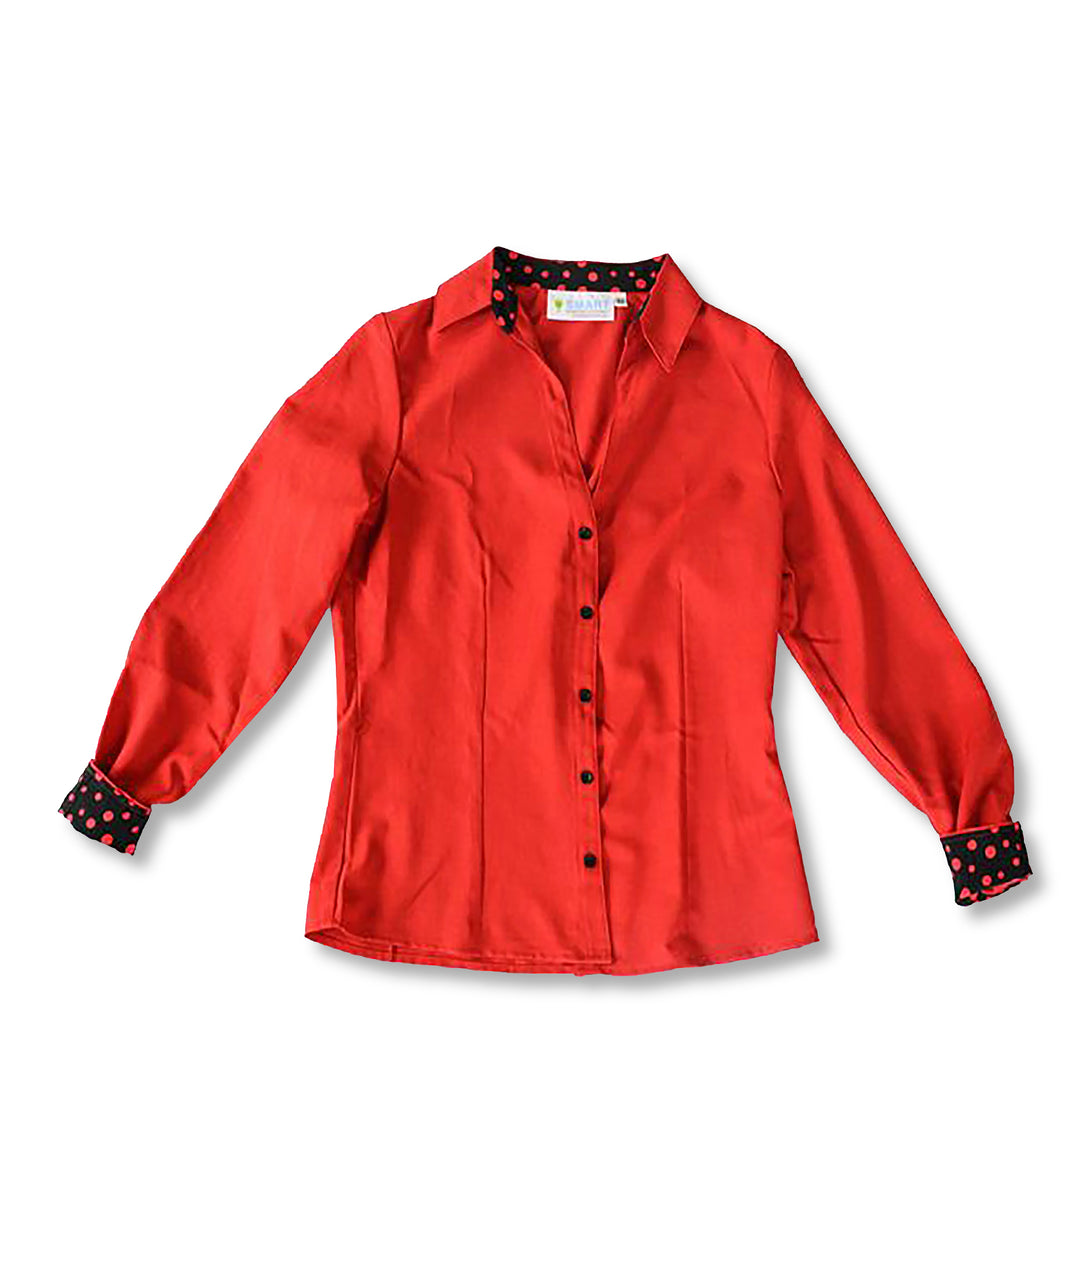 Alana Soul Adaptive Blouse in Red with Black/Red Trim